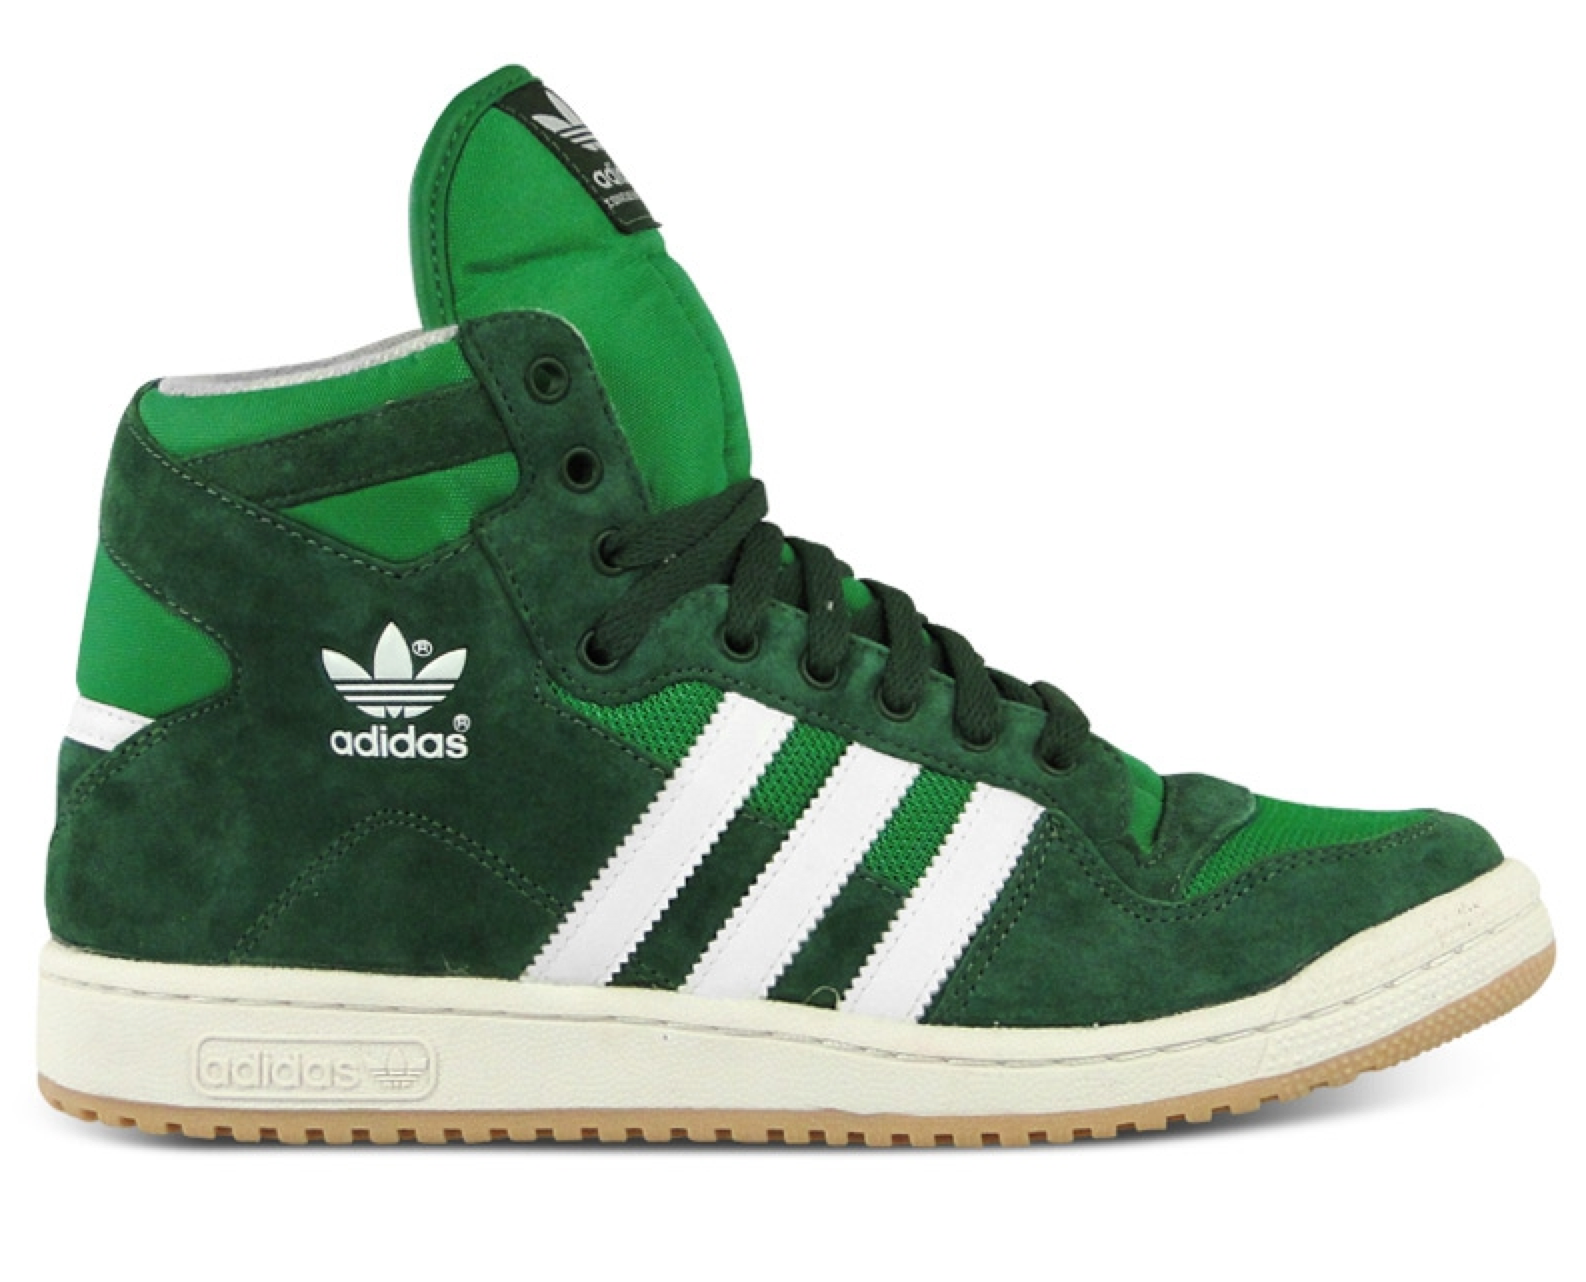 adidas Originals Decade Mid OG 'Dark Green/White/White Vapor'